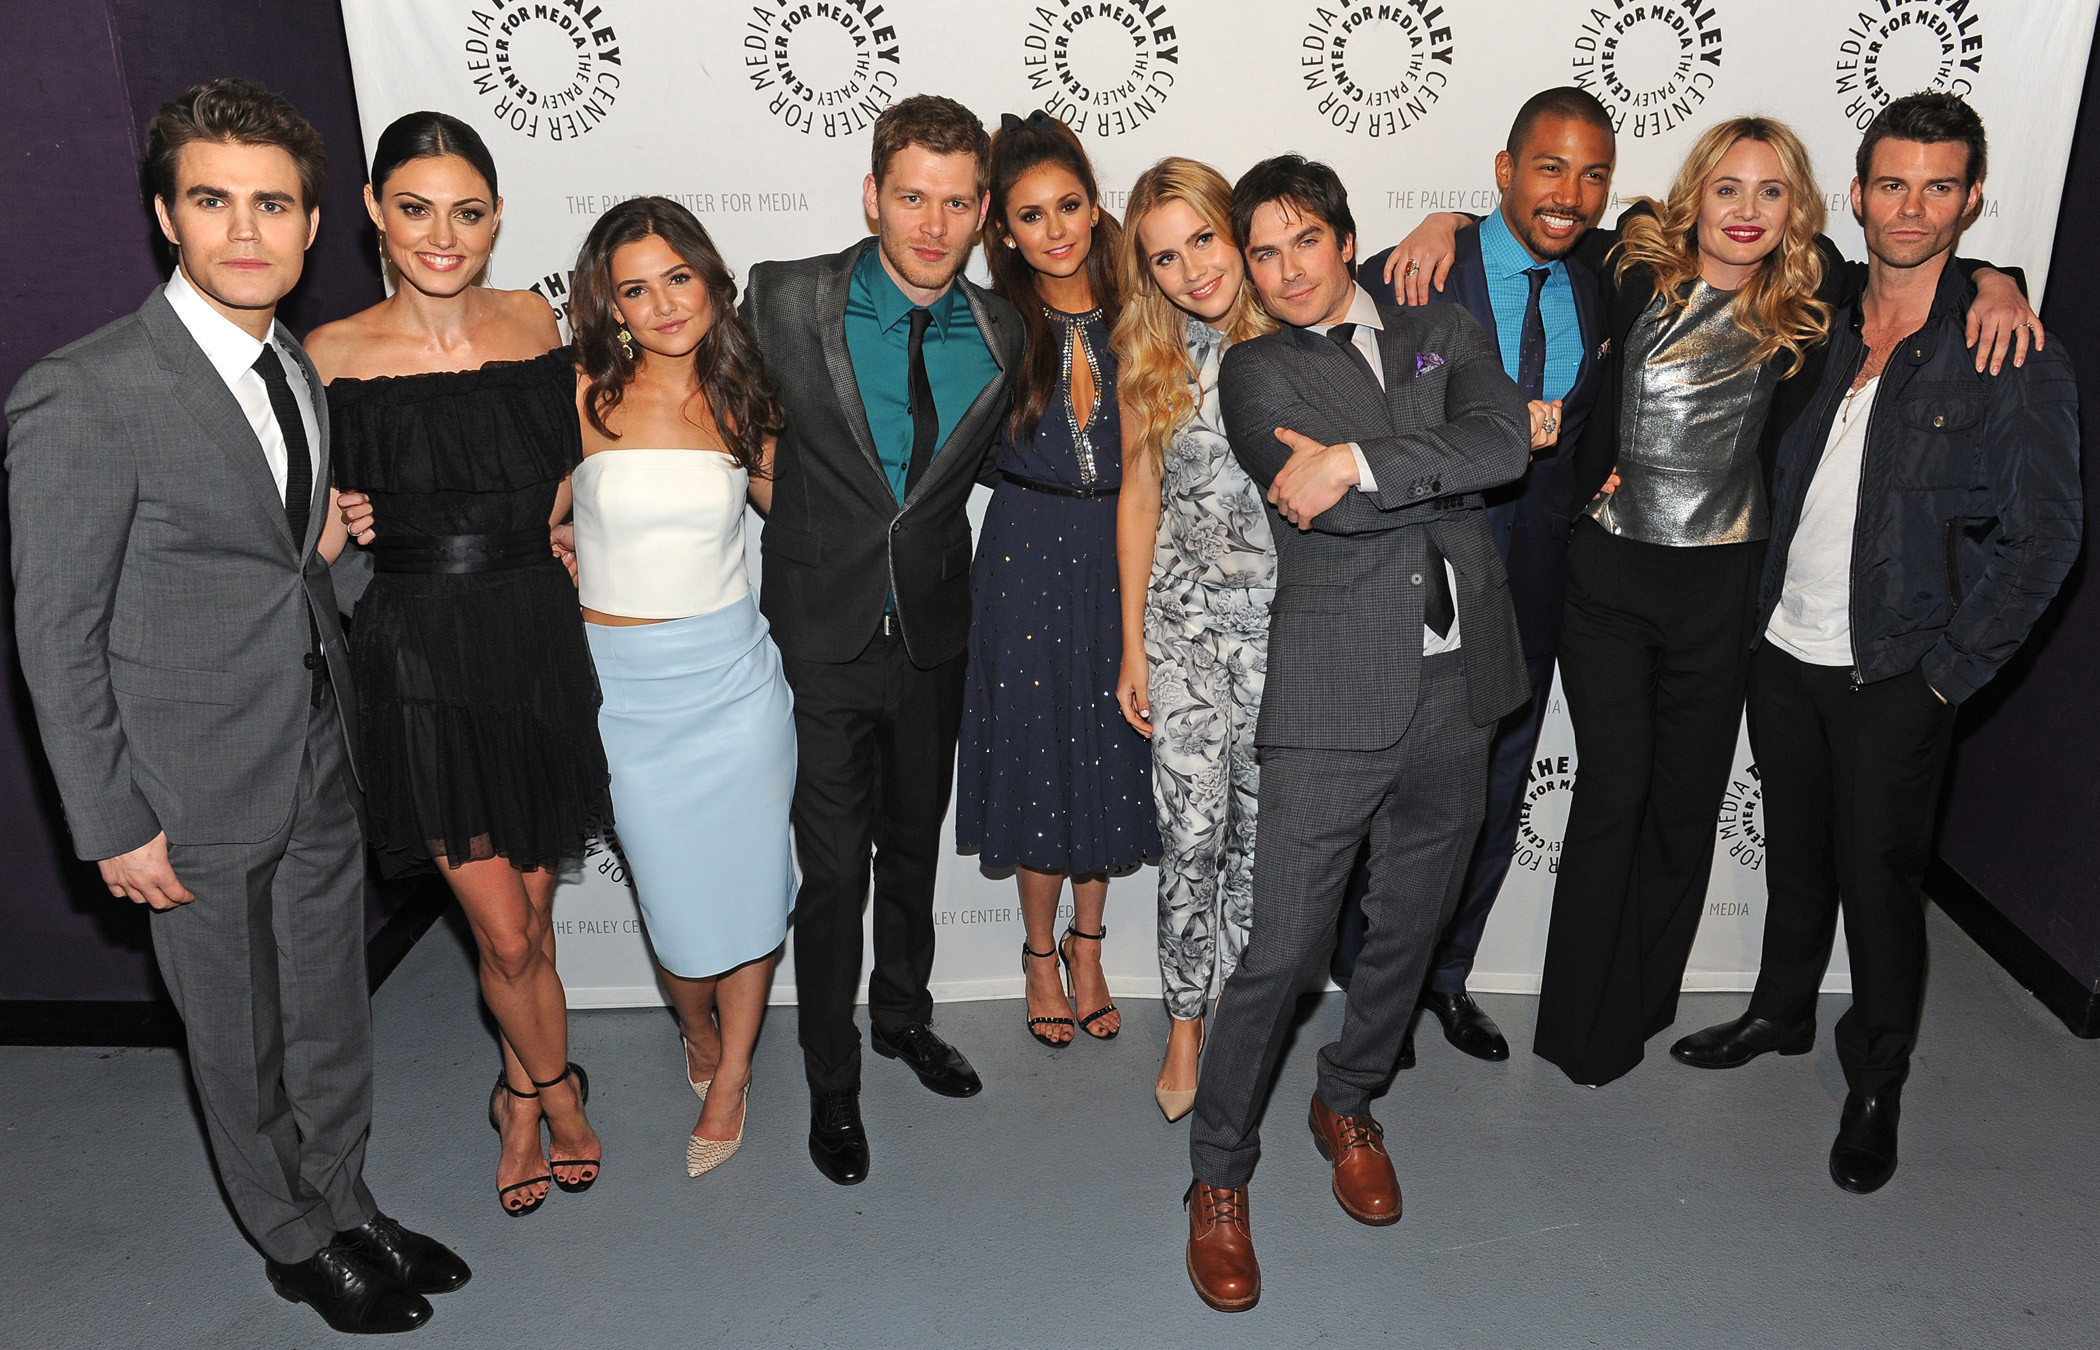 THE ORIGINALS and THE VAMPIRE DIARIES